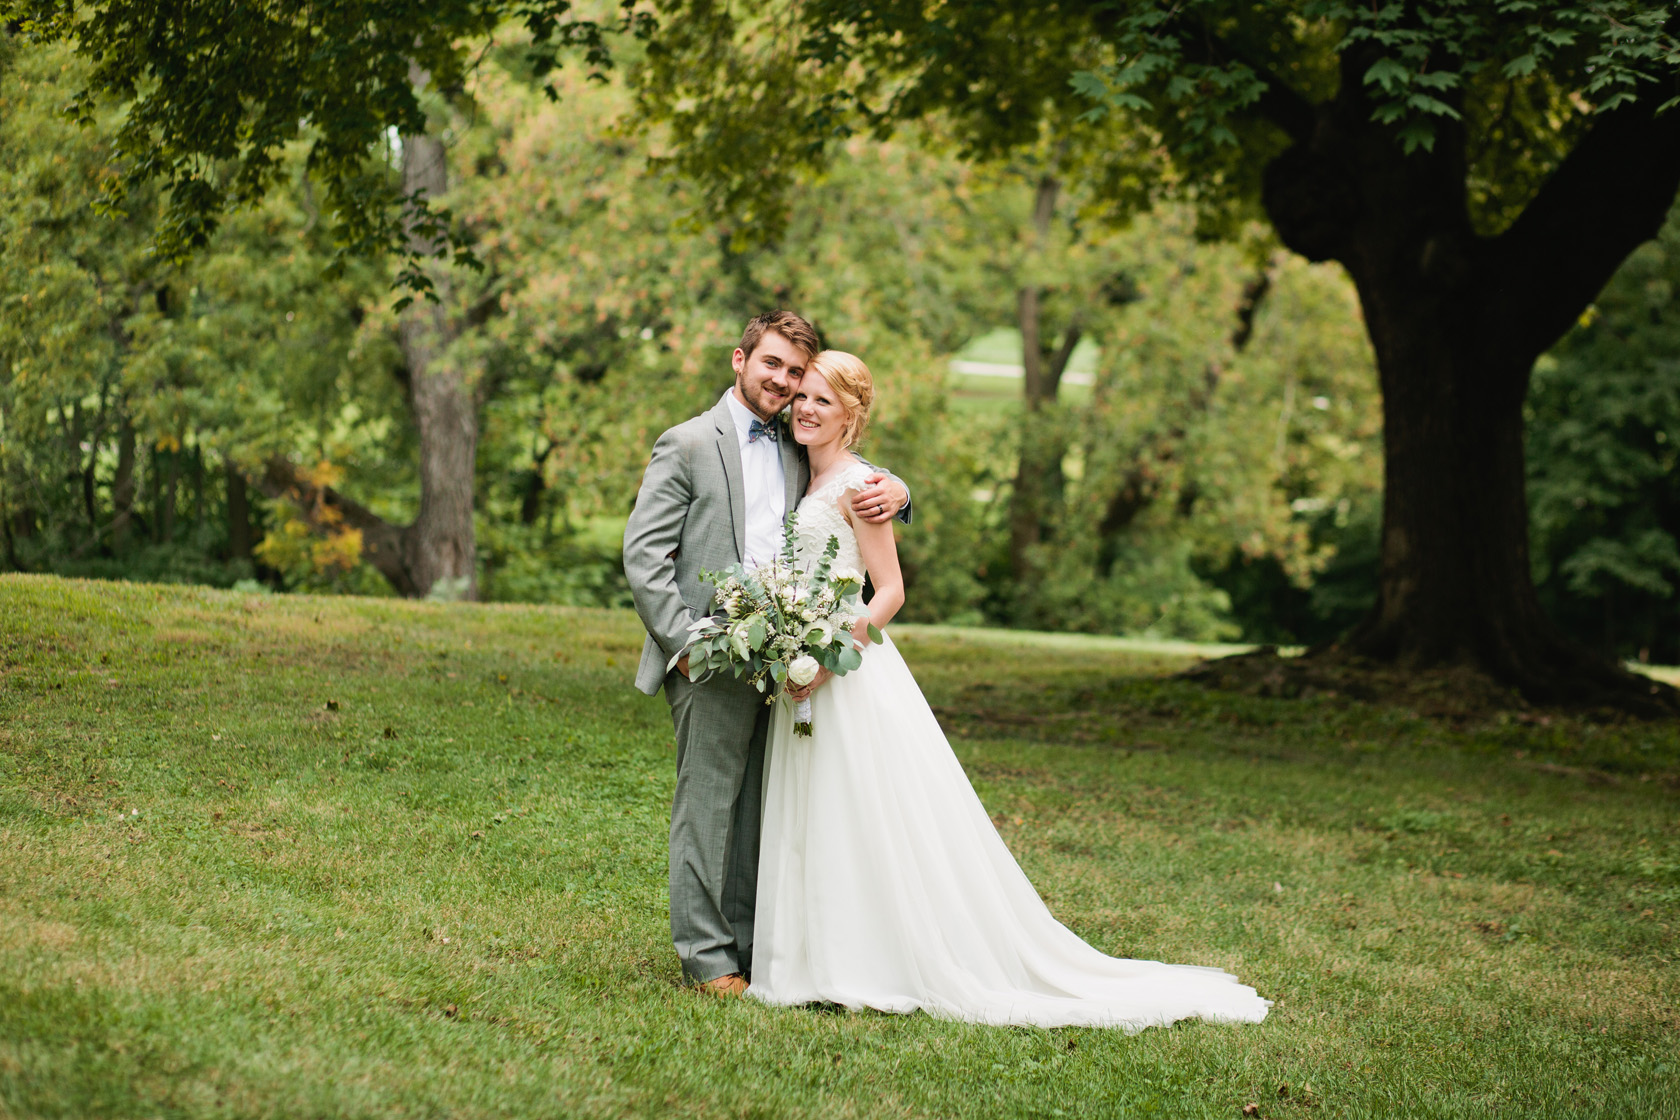 Des Moines water works park wedding photos